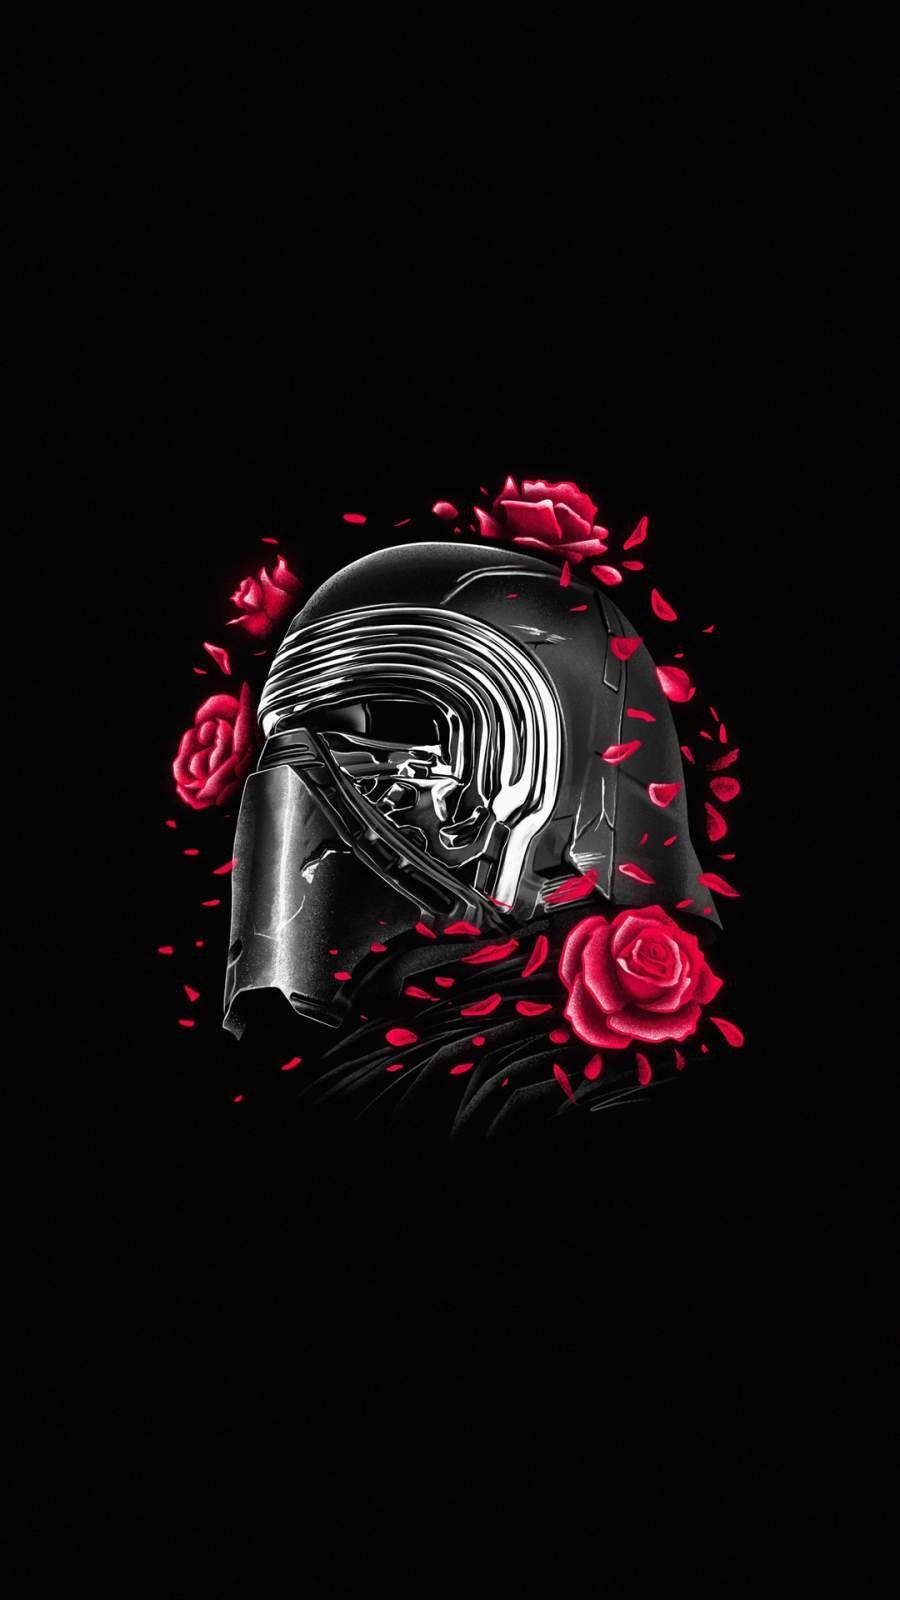 Kylo Ren Iphone Wallpaper In 2020 Star Wars Background Star Wars Wallpaper Iphone Star Wars Poster